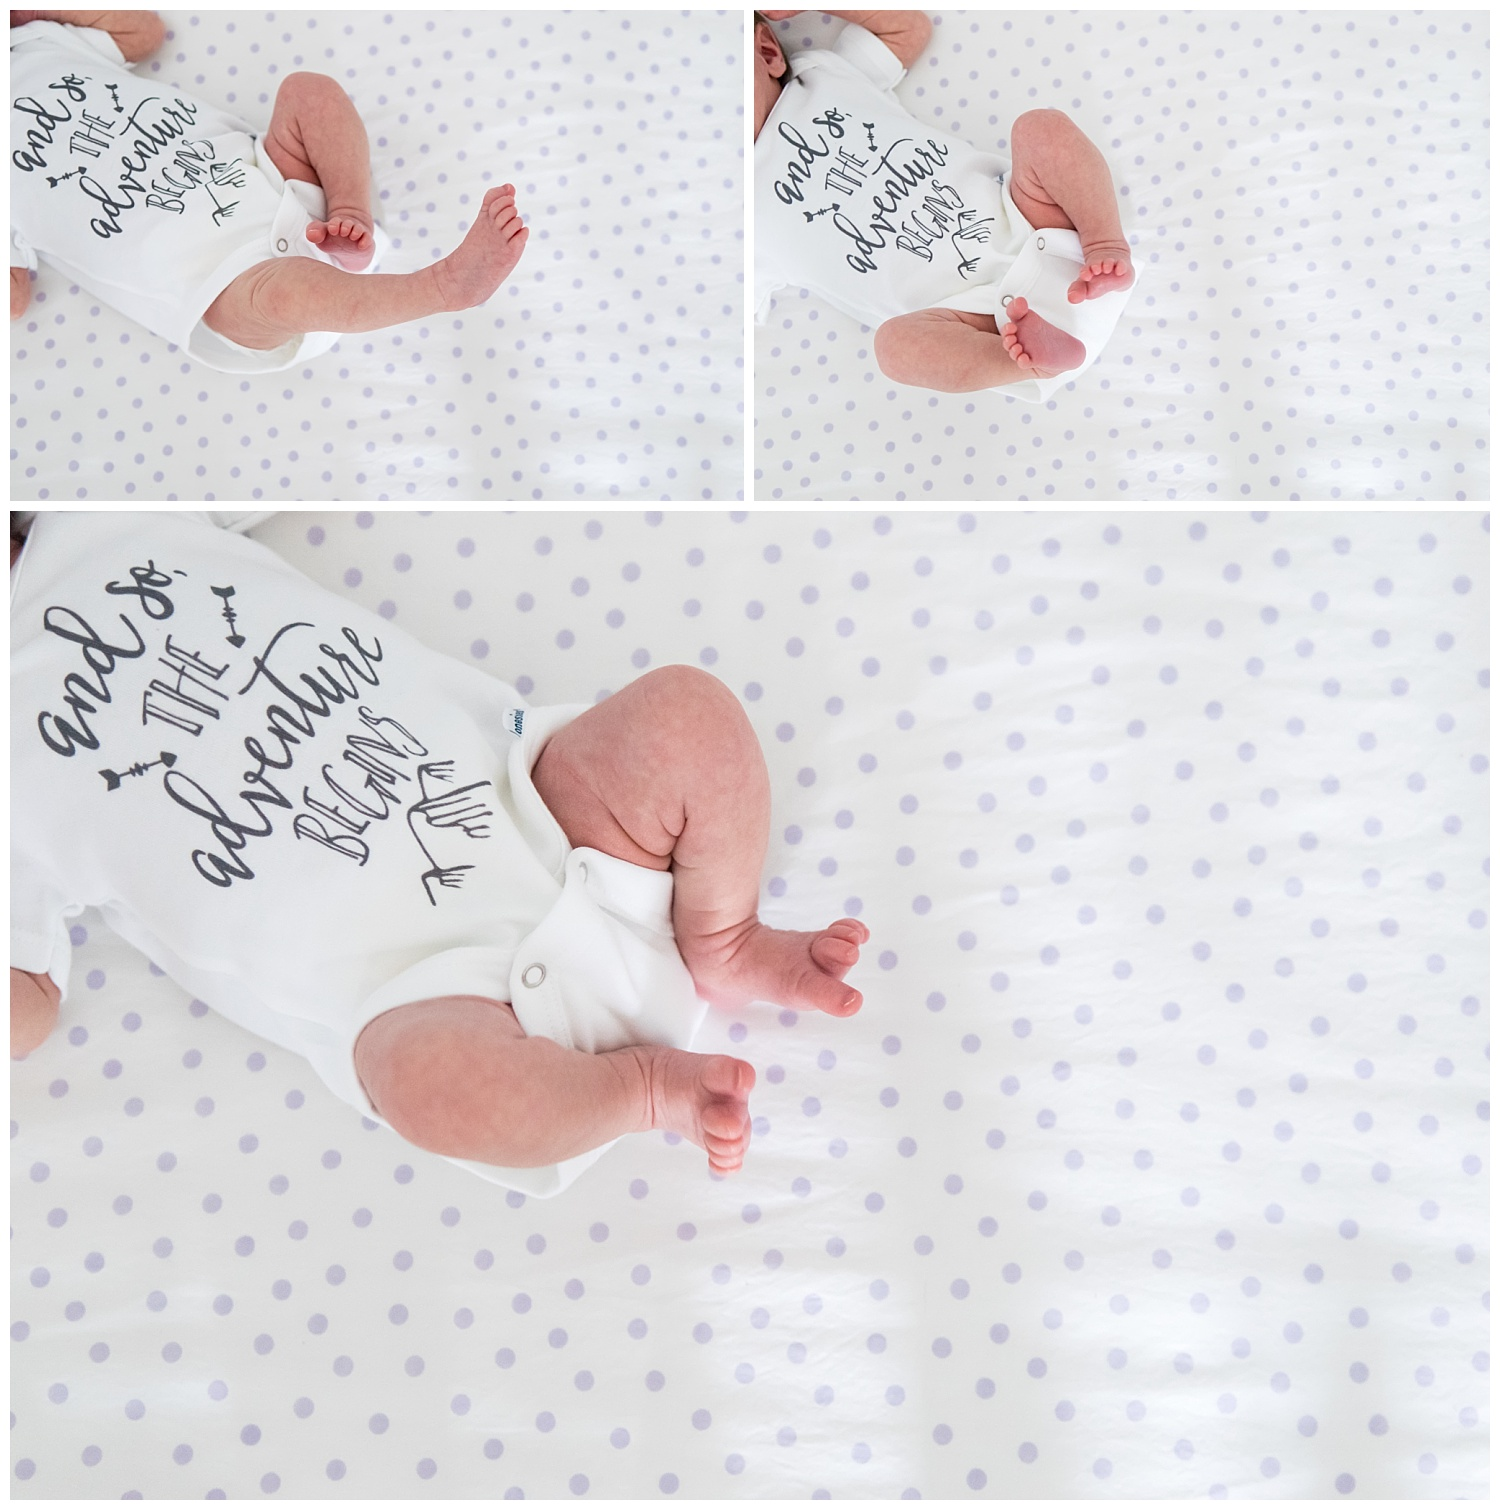 these are overhead images of a newborn baby girl laying in her crib. the focus is on the newborn baby girls' legs and feet. the images were taken during an in home lifestyle newborn session.